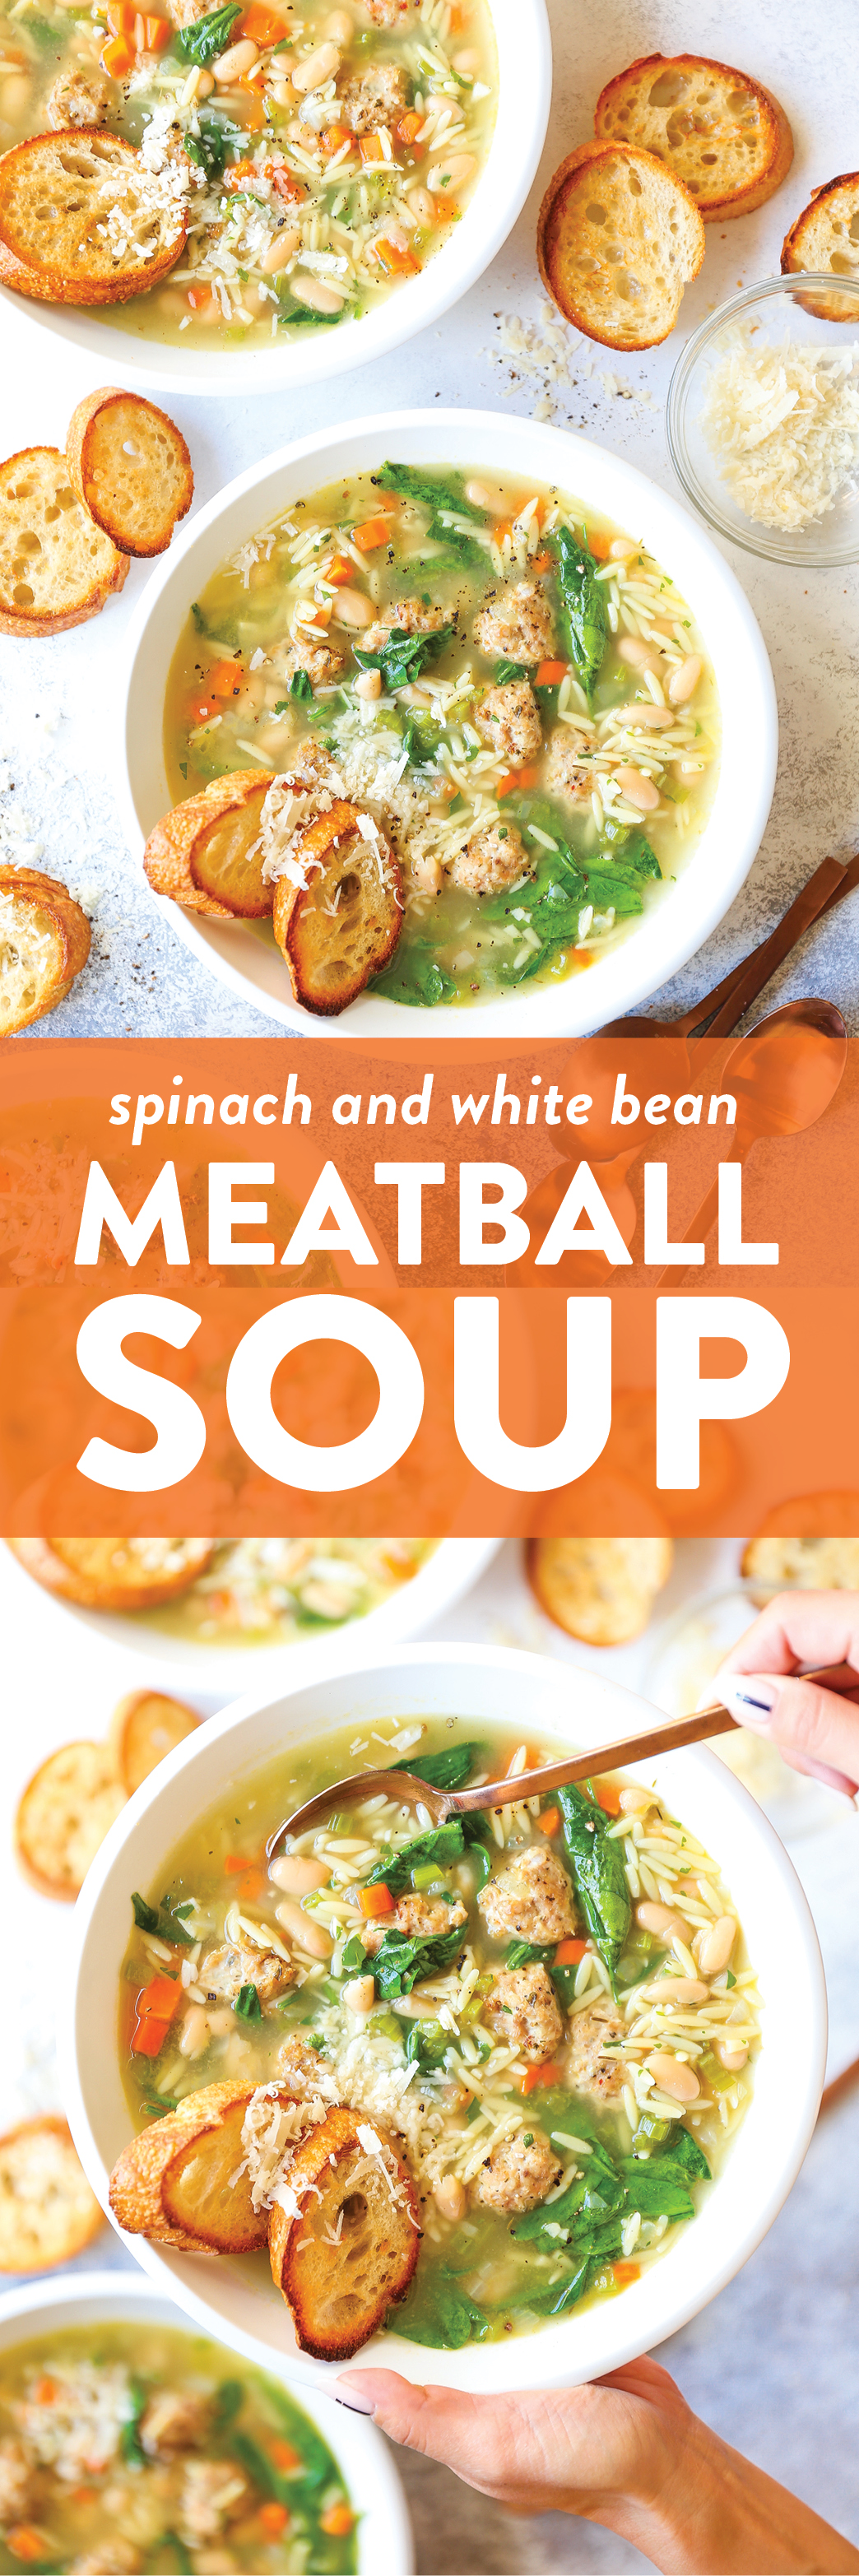 Spinach and White Bean Meatball Soup - My favorite cozy weeknight soup! Made so hearty with white beans, spinach, and the most tender chicken meatballs!